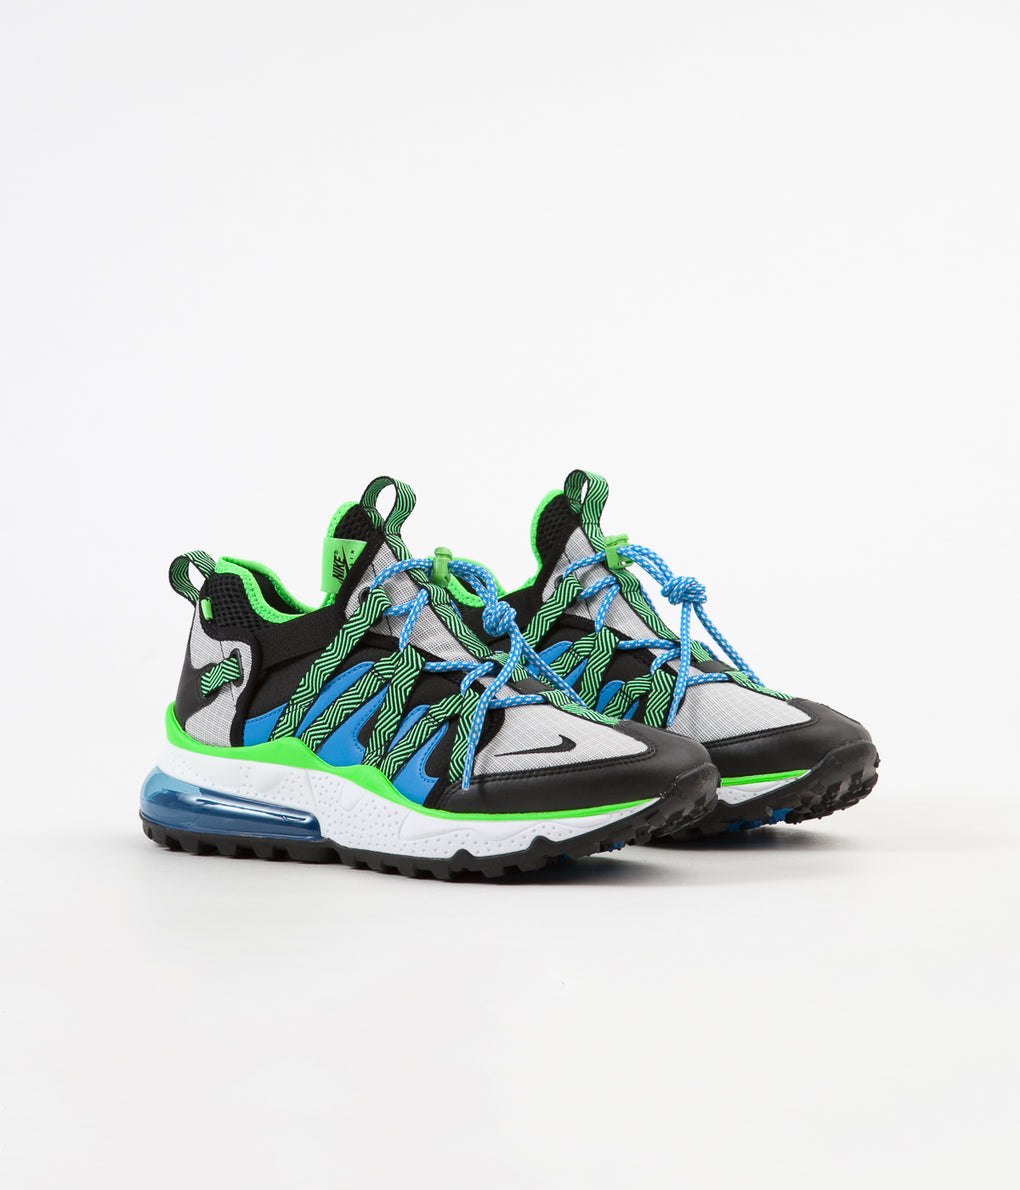 Nike Air Max 270 Bowfin Shoes - Black / Black - Phantom - Photo Blue